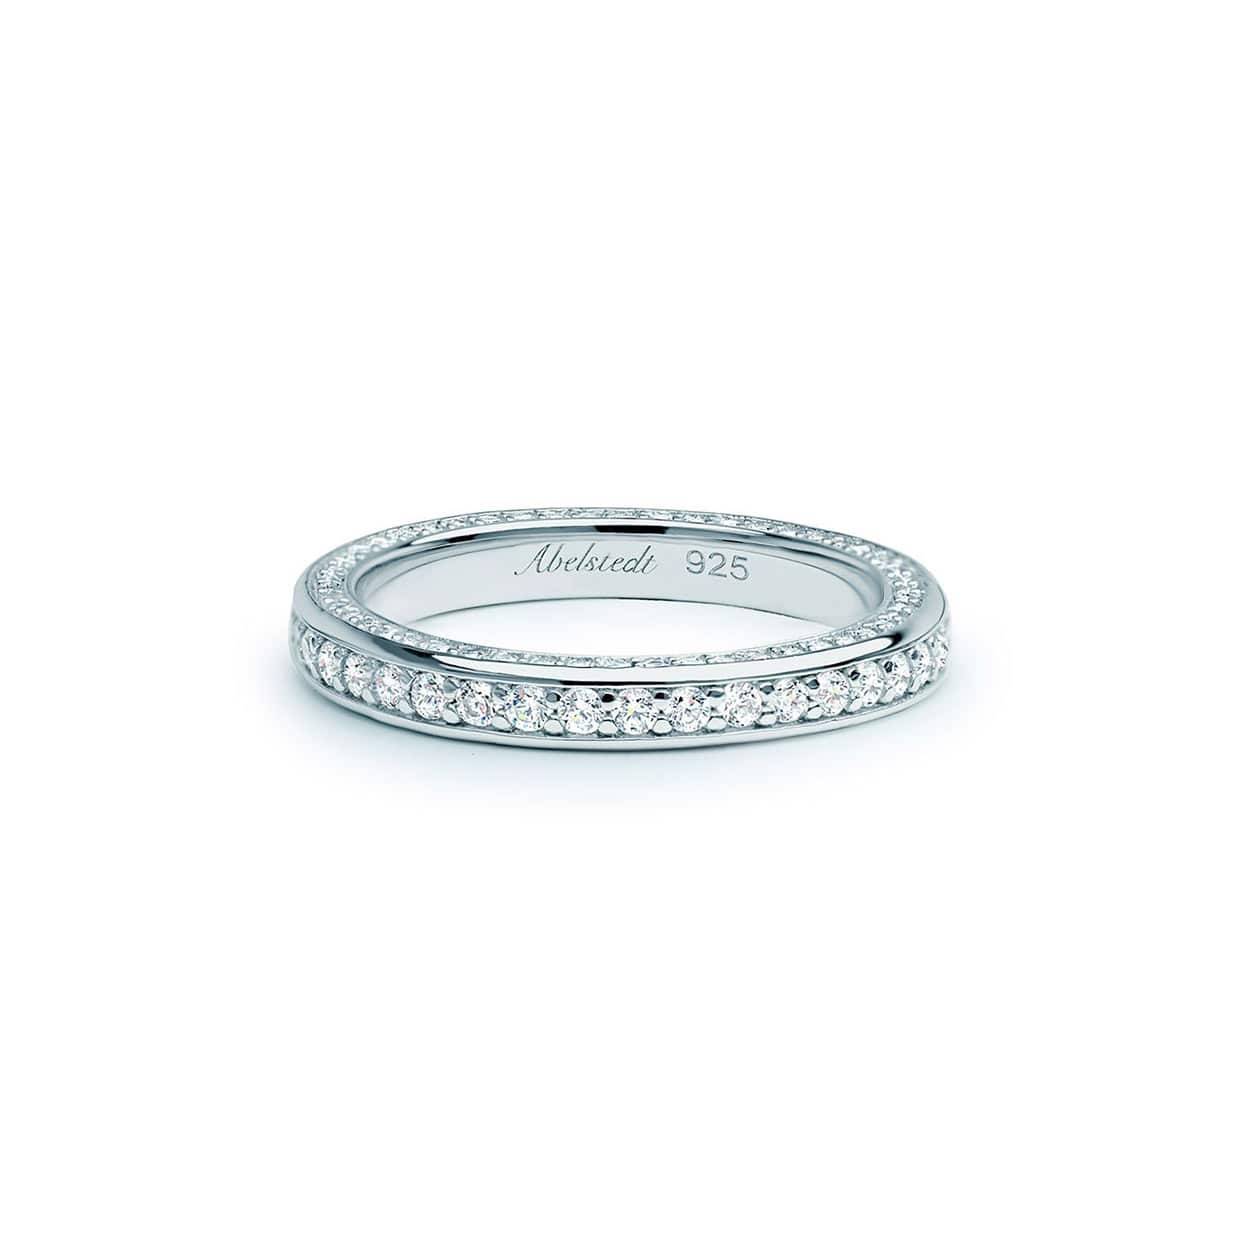 Oxford Silver Band Ring With Side Stone - Abelstedt